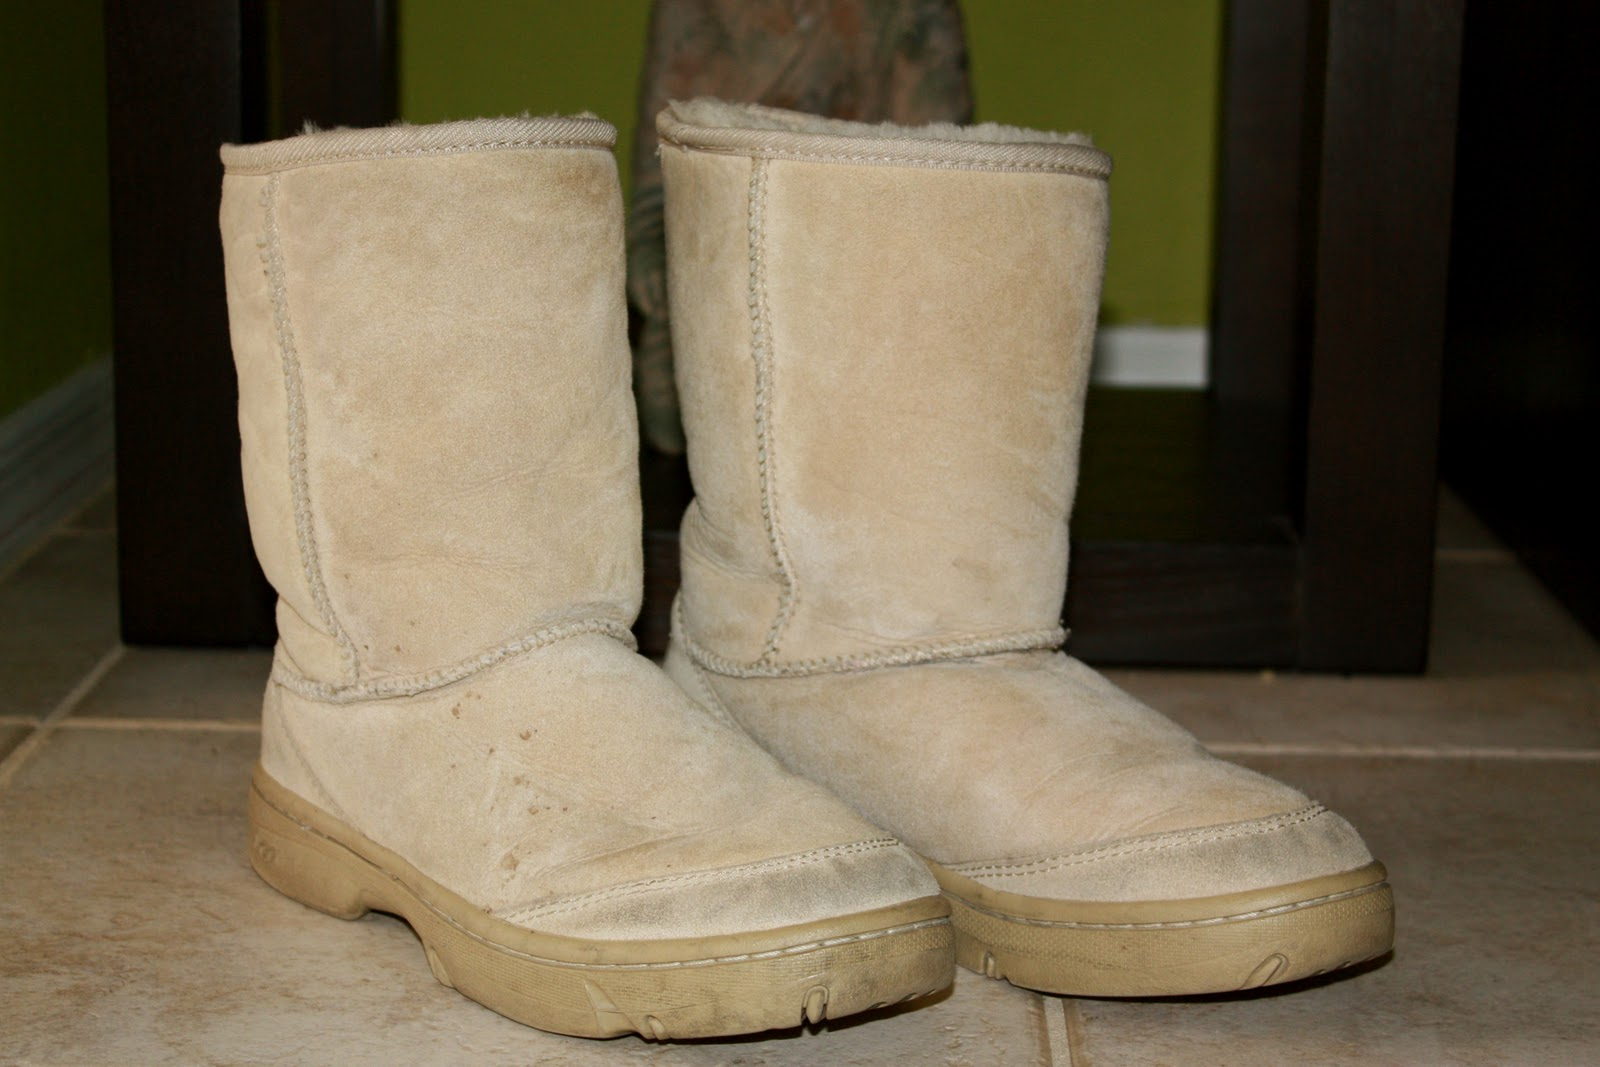 My UGG Boots Got Ugly!